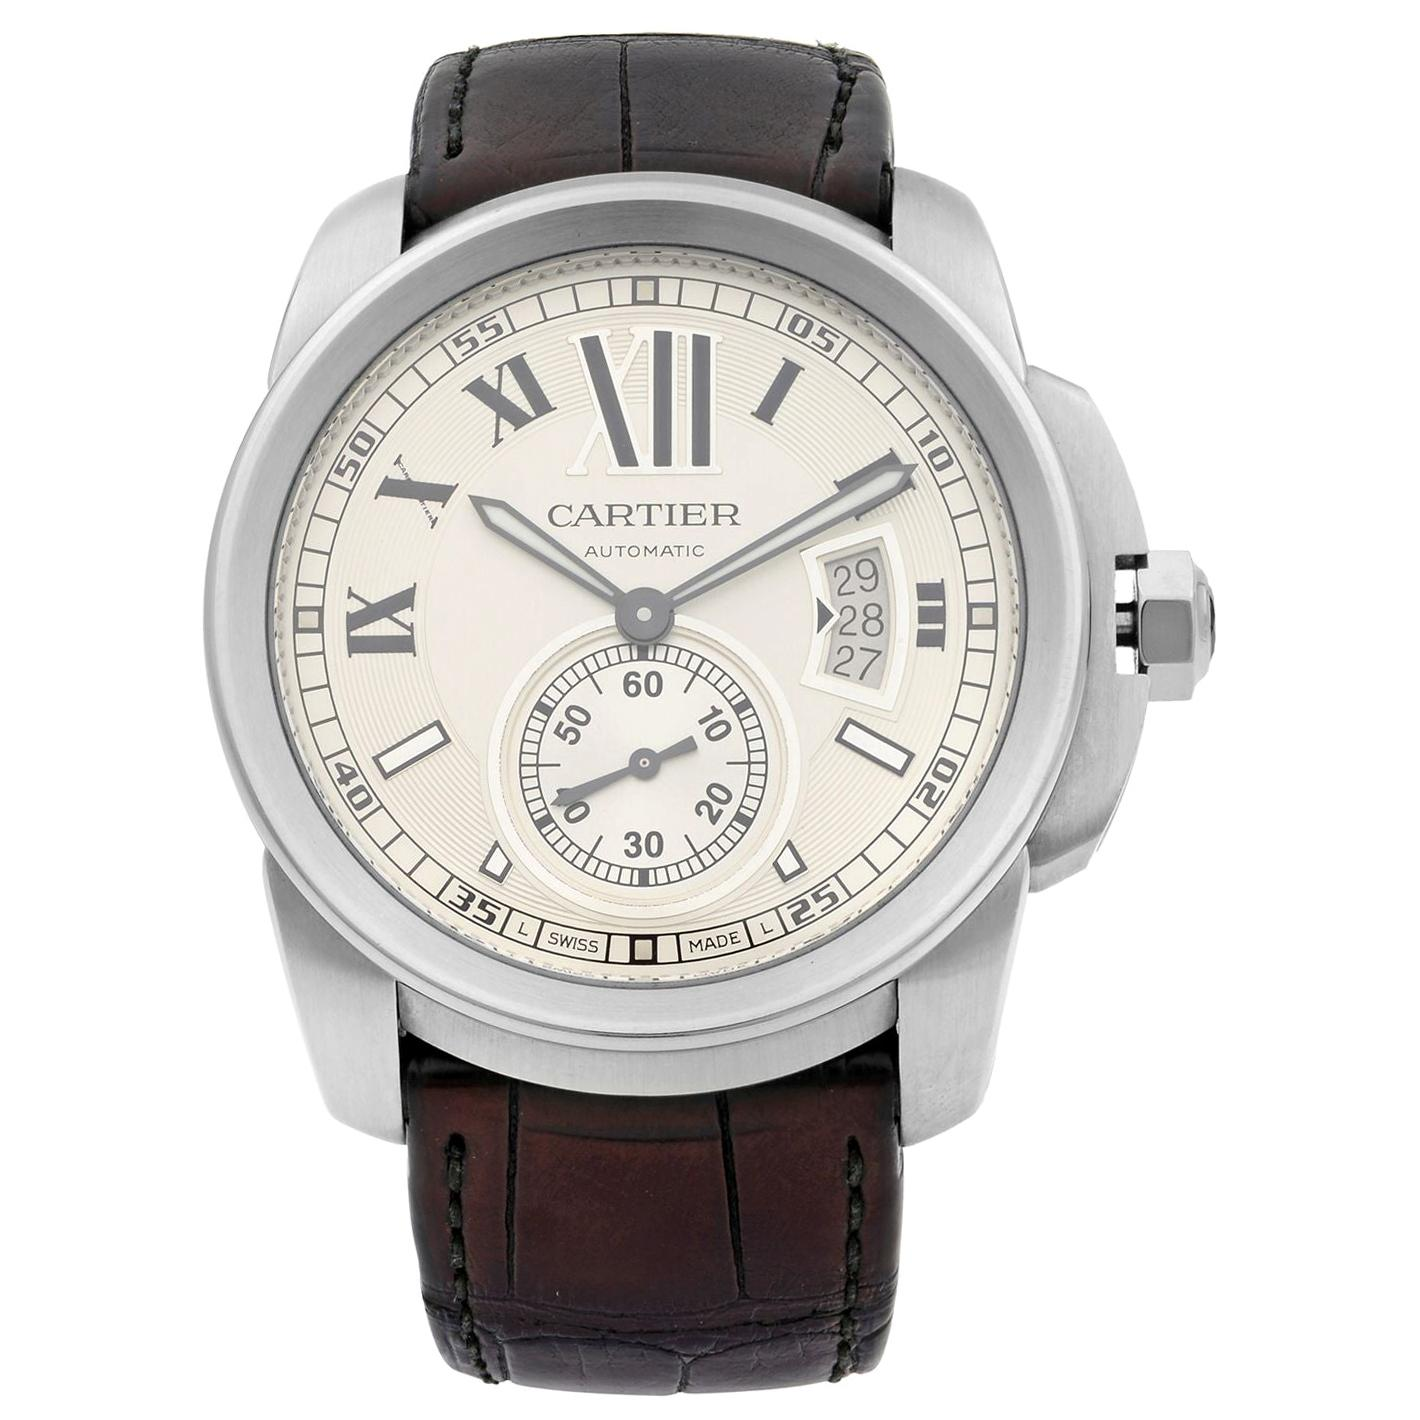 Cartier Calibre Stainless Steel Silver Dial Date Automatic Men's Watch W7100037